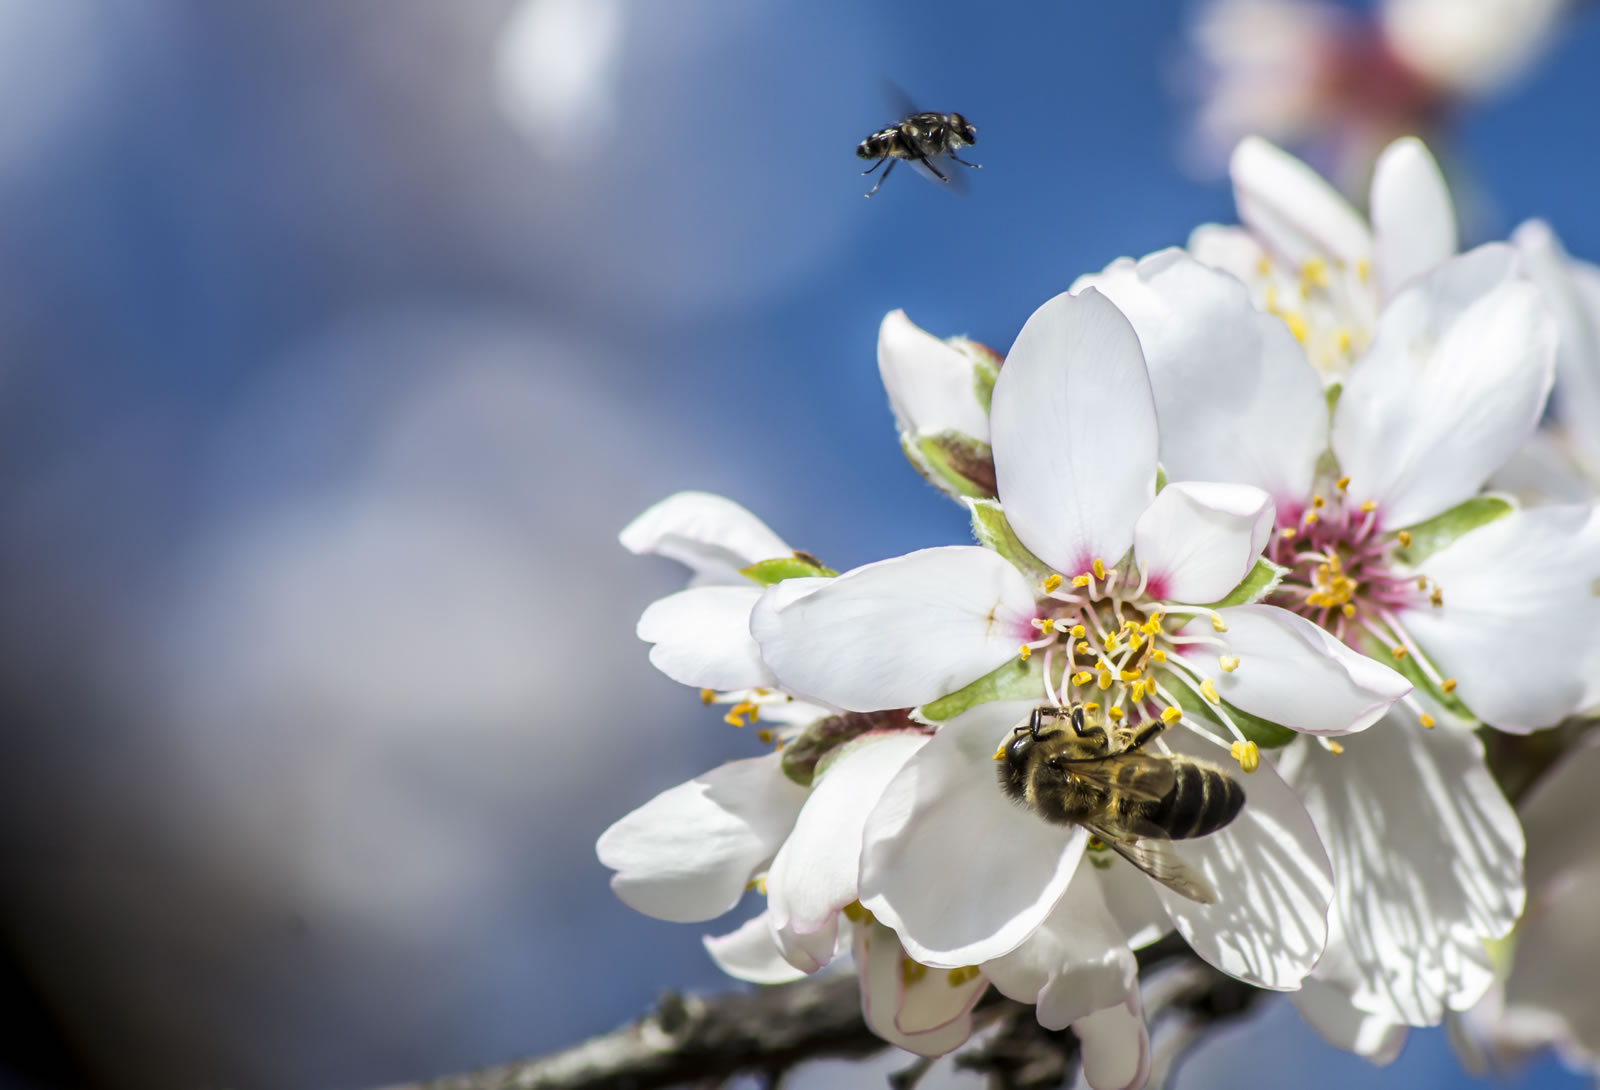 Almond blossom and bees